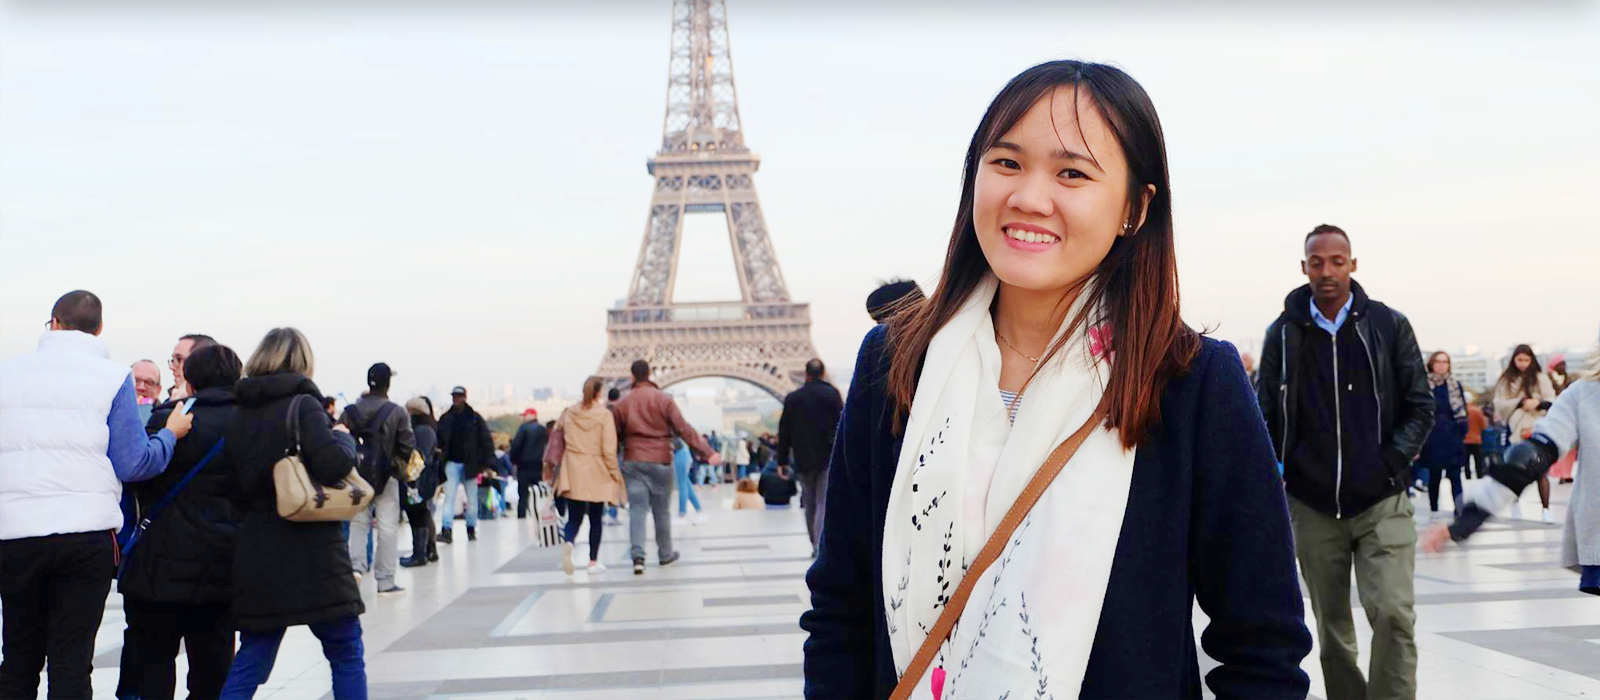 Do Thi Thuy Duong - Aupair in France